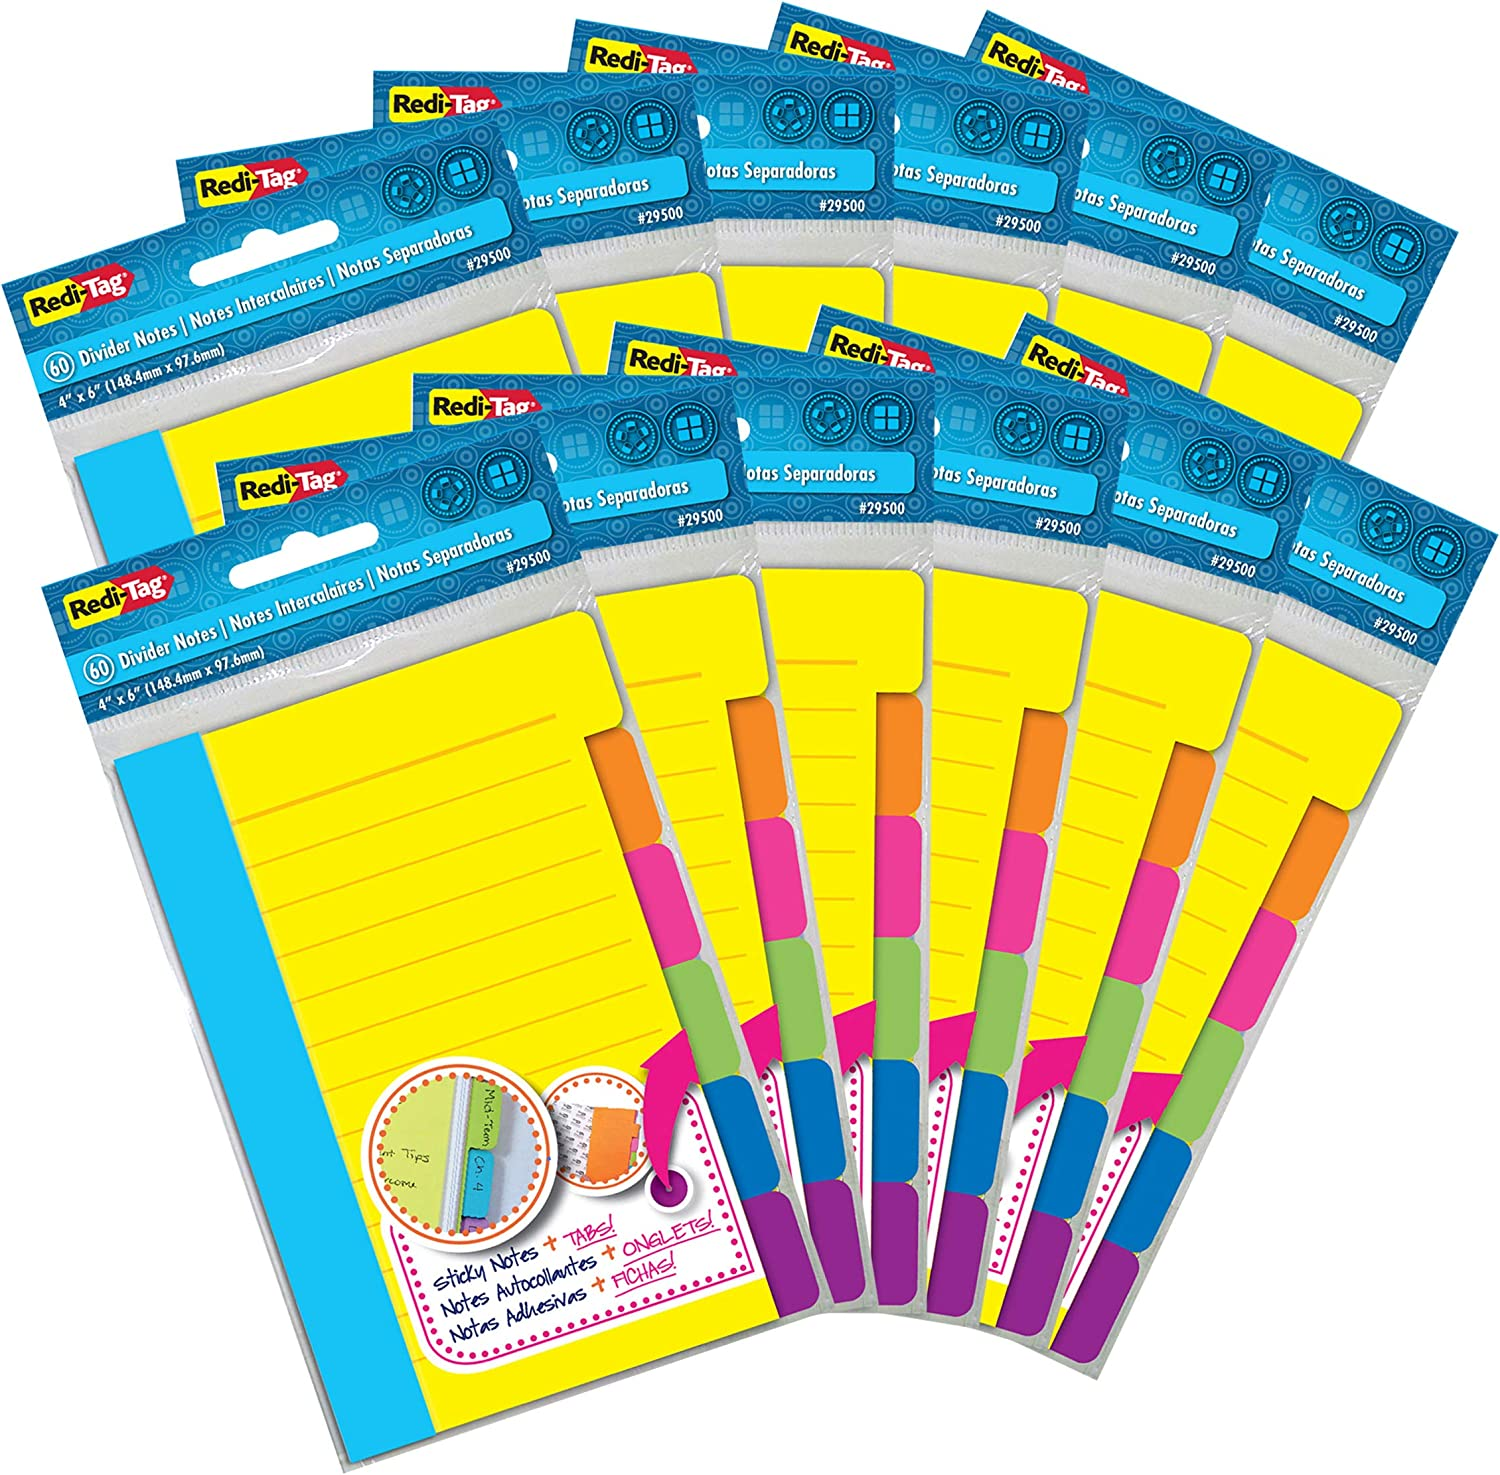 Max 64% OFF Redi-Tag Divider Max 48% OFF Sticky Notes Tabbed Self-Stick Note Pad Lined